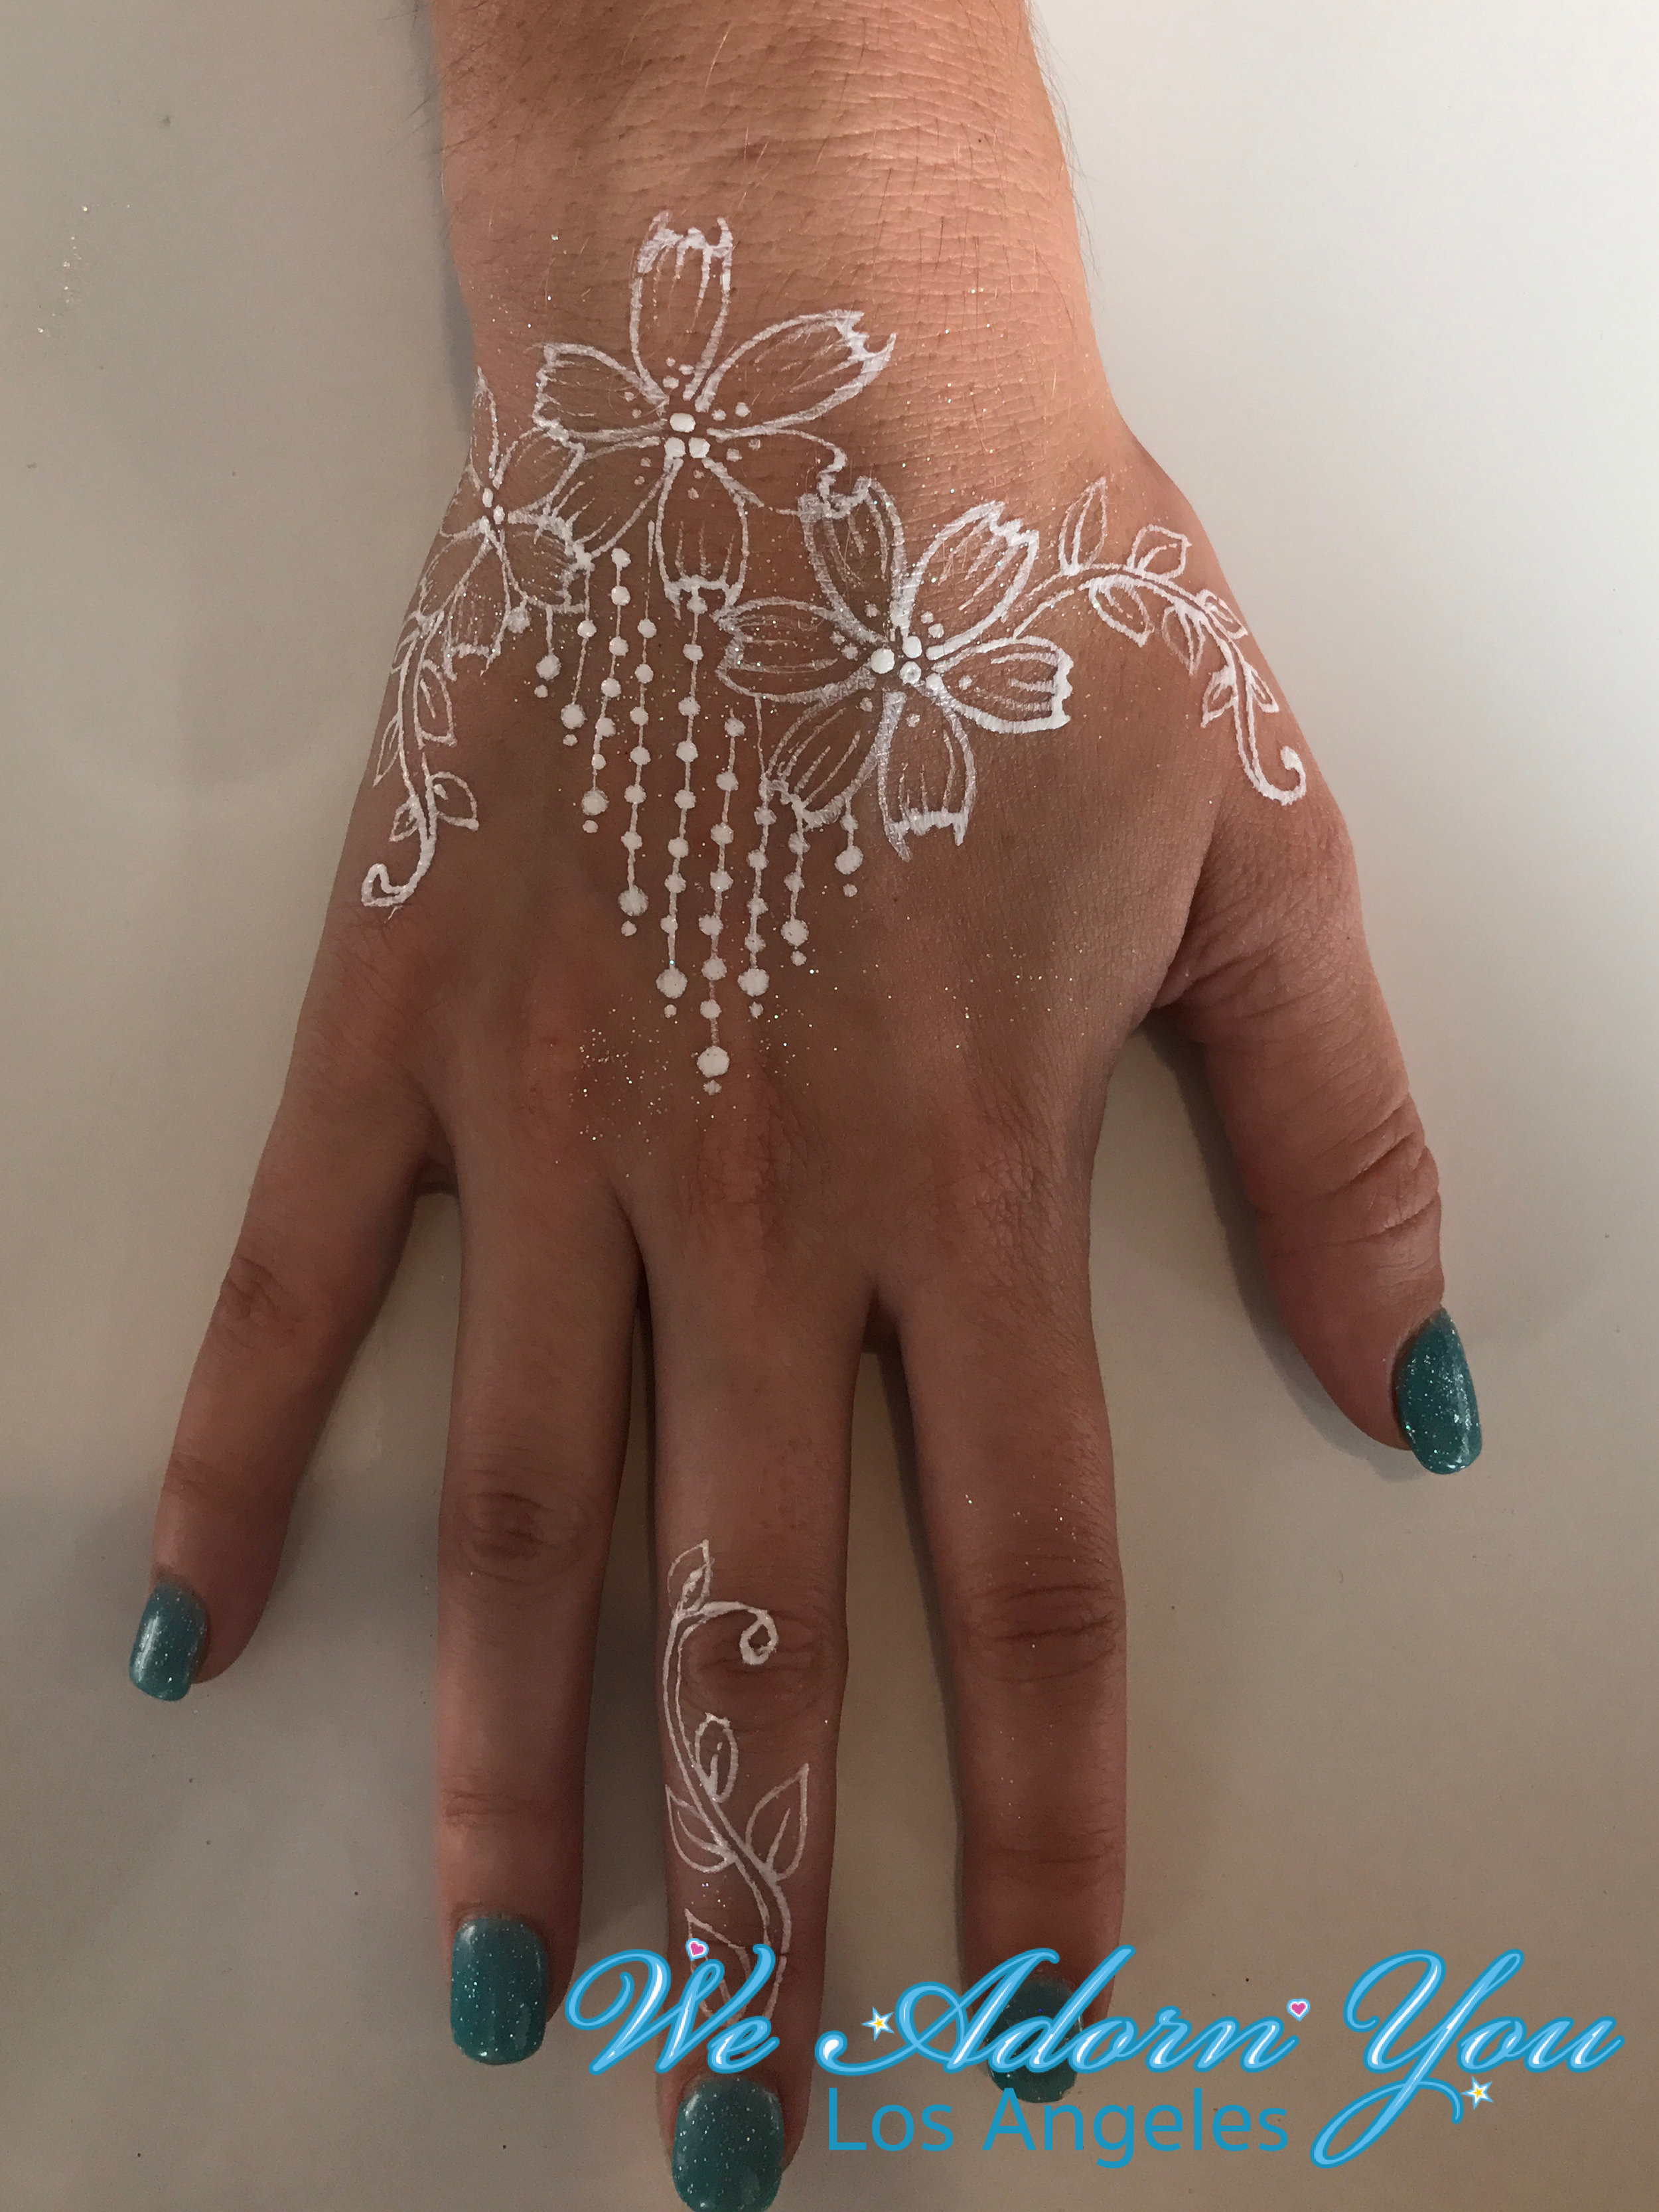 We Adorn You Los Angeles Color Henna White flower 4.jpg